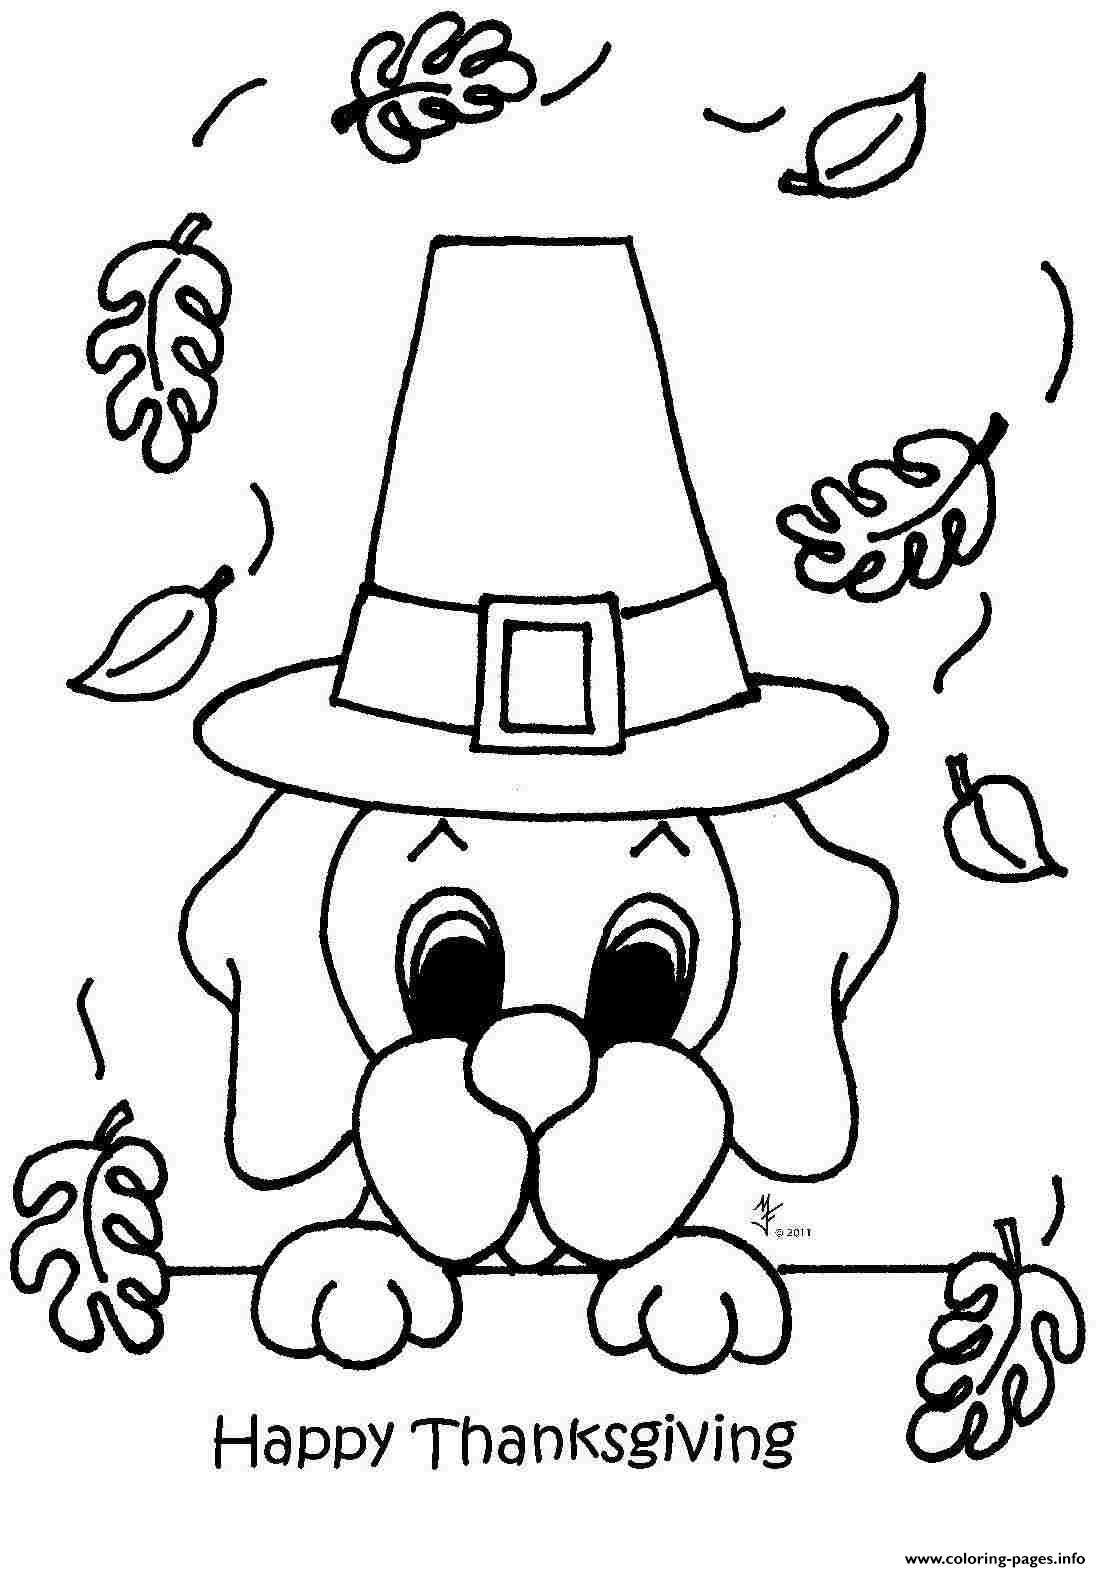 Print Happy Thanksgiving Cute Dog Coloring Pages Thanksgiving Coloring Sheets Free Thanksgiving Coloring Pages Thanksgiving Coloring Pages